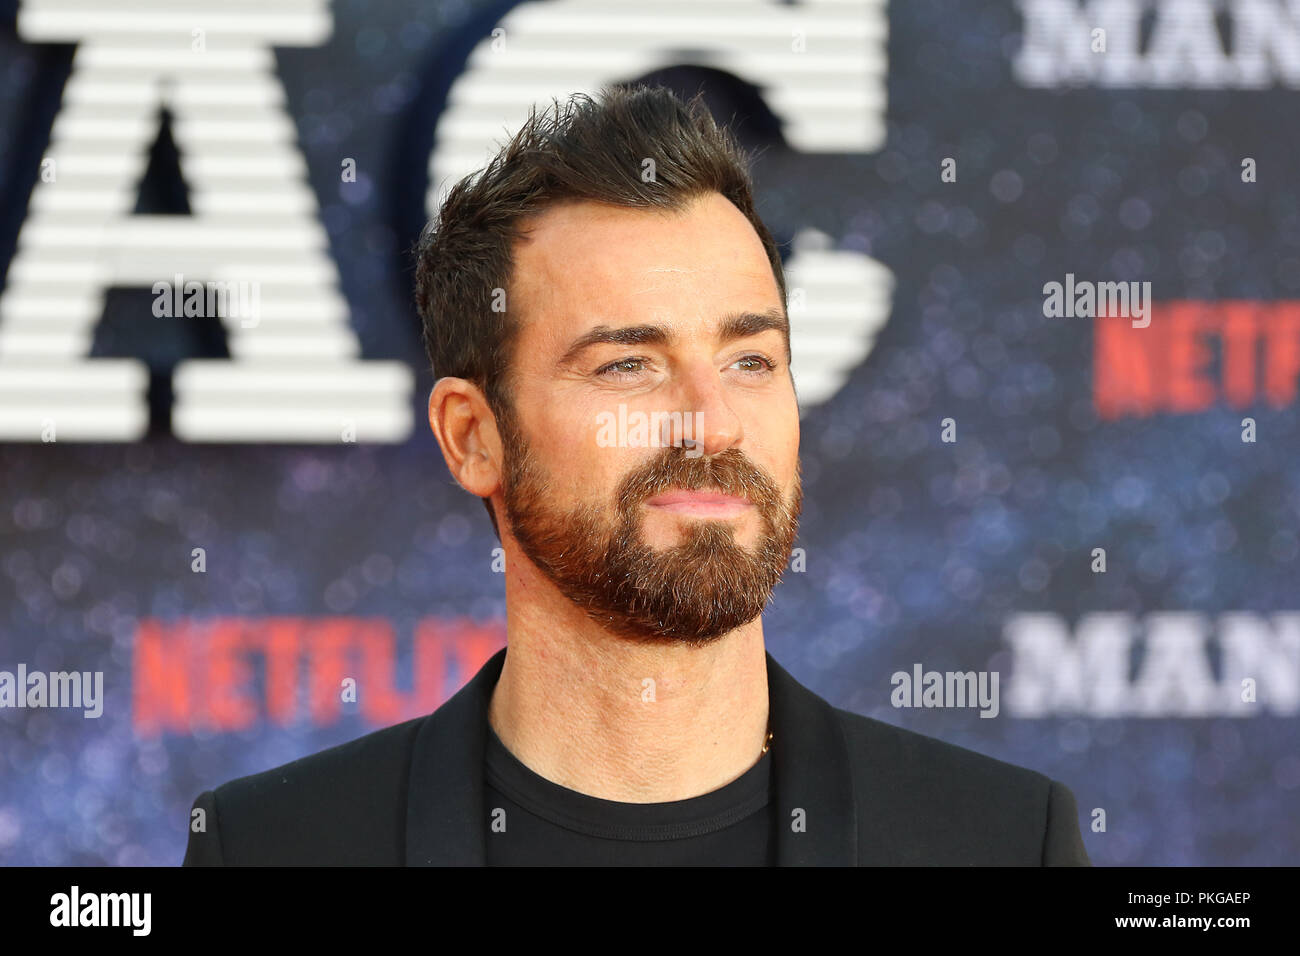 London, UK. 13th September 2018. Justin Theroux, Maniac - World Premiere, Southbank Centre�s Queen Elizabeth Hall, London, UK, 13 September 2018, Photo by Richard Goldschmidt Credit: Rich Gold/Alamy Live News - Stock Image